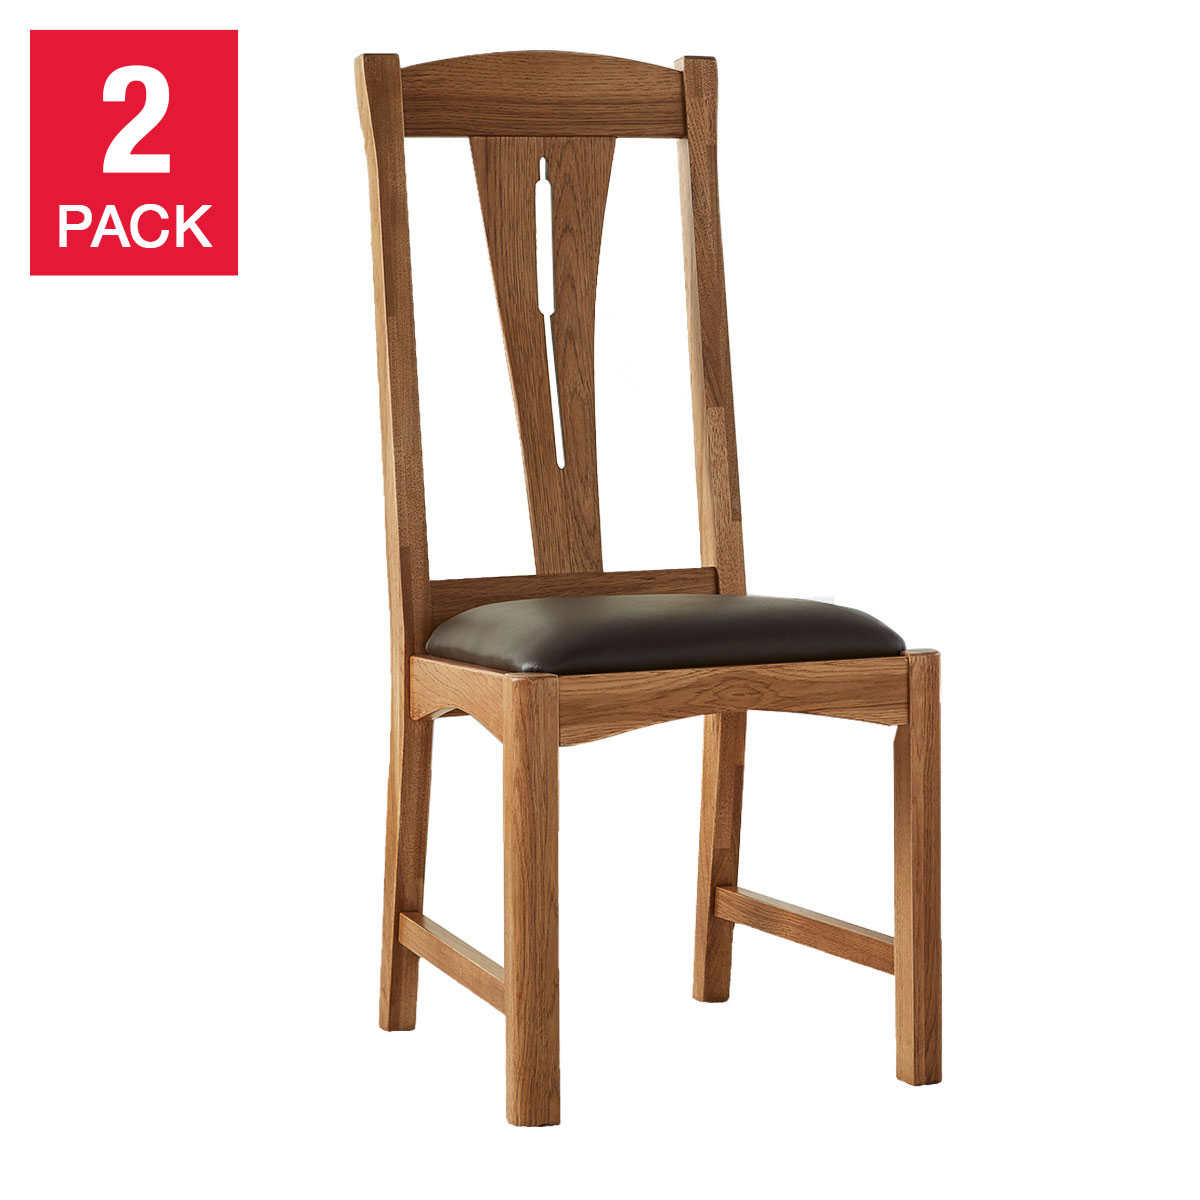 Annora Dining Chair 2 Pack